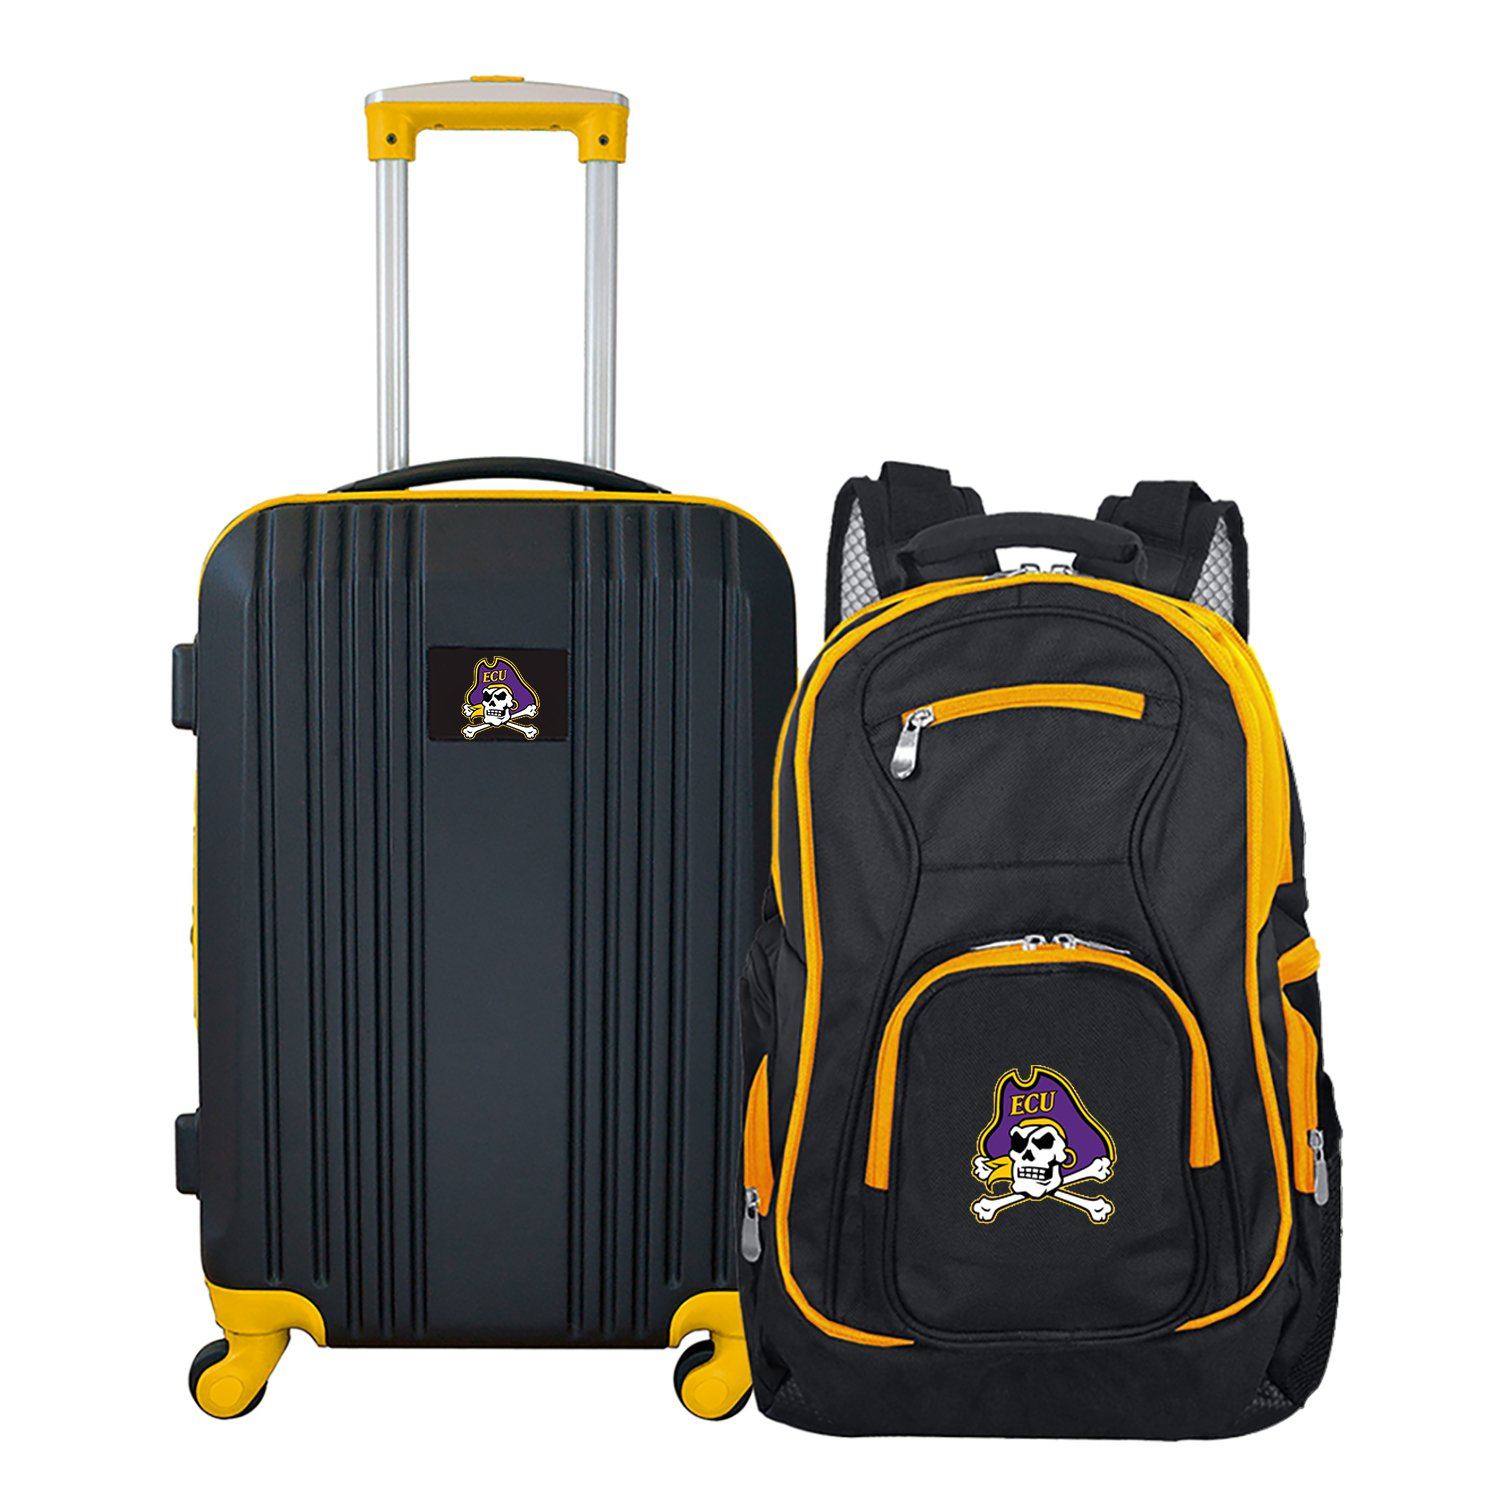 NCAA East Carolina Pirates 2-Piece Luggage Set